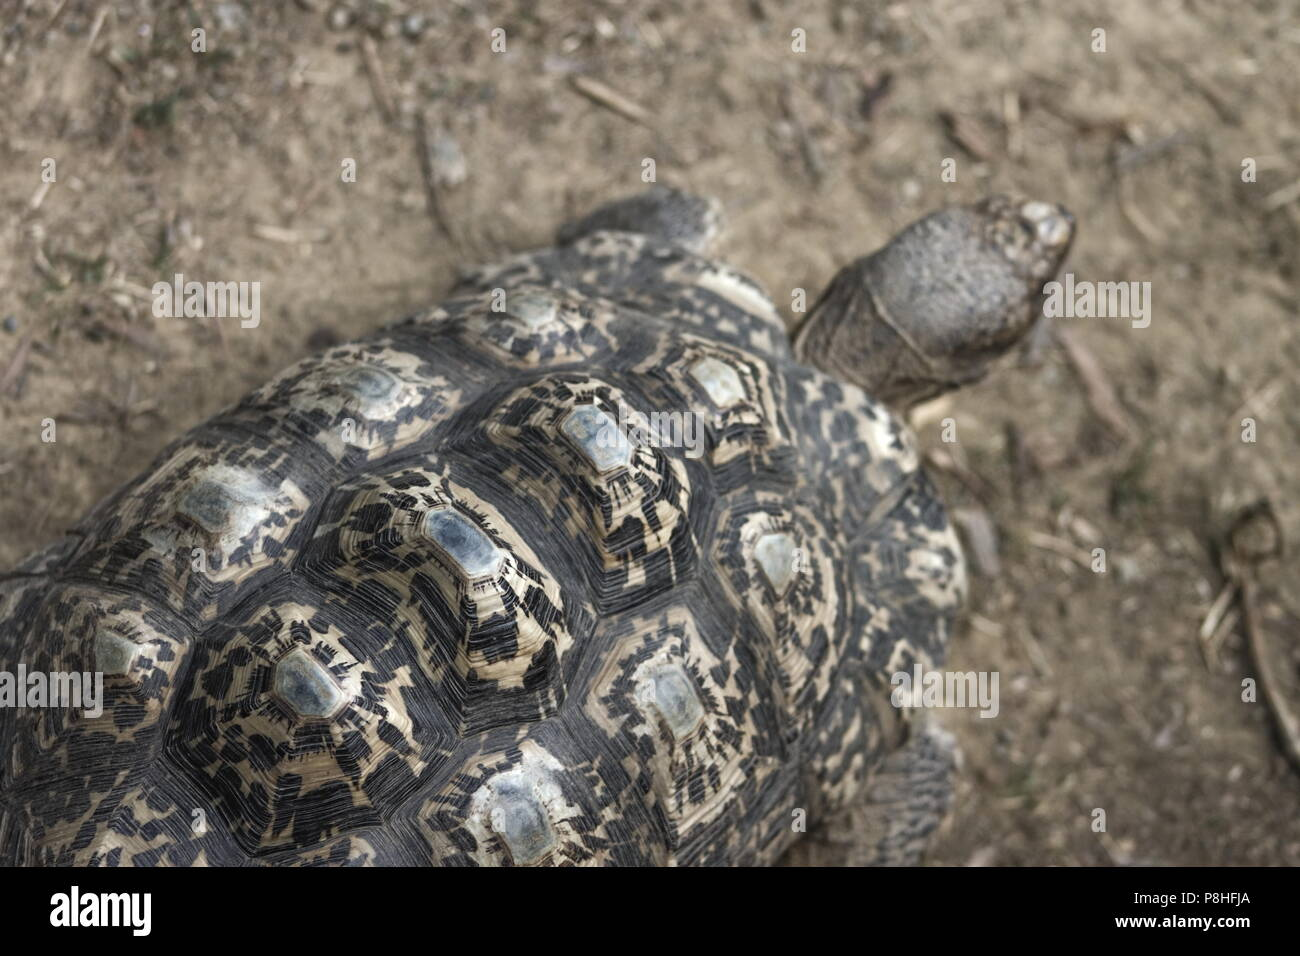 Close up image of a leopard tortoise (Stigmochelys pardalis) - Stock Image